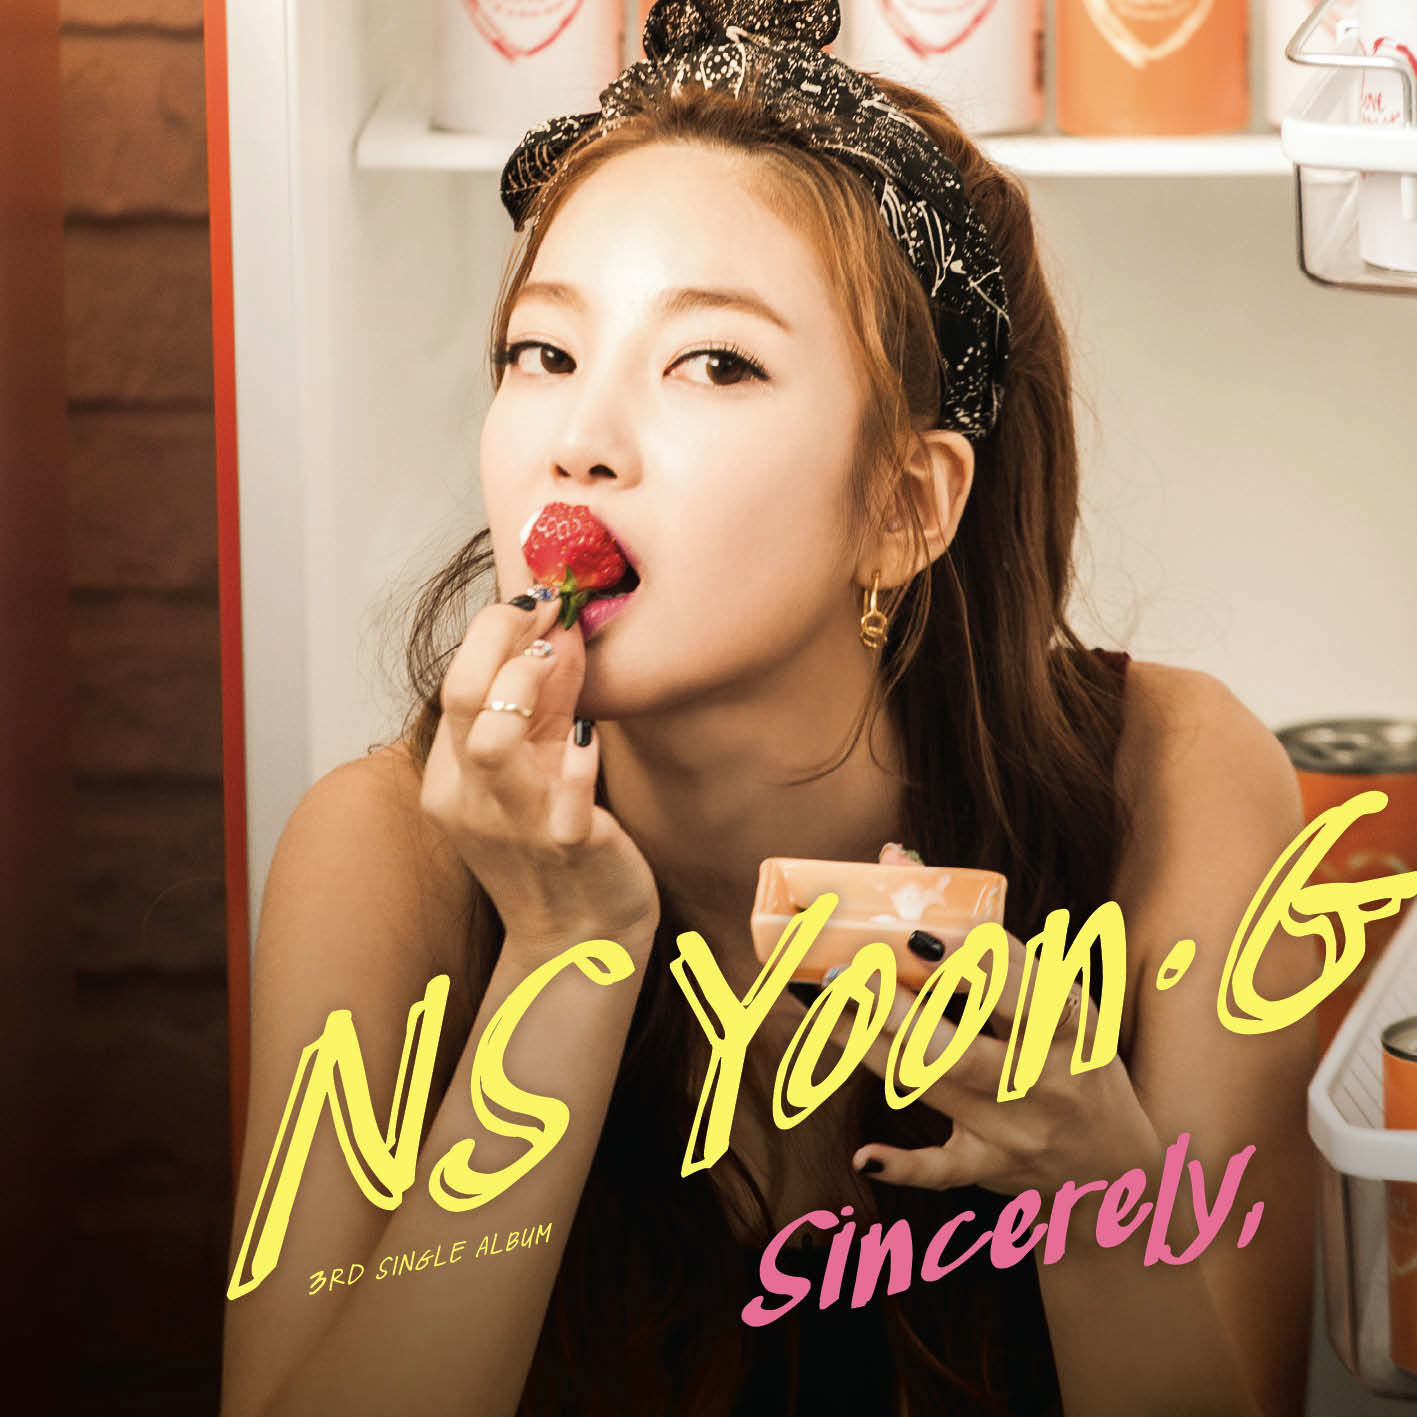 20151121.80 NS Yoon-G - Sincerely cover.jpg